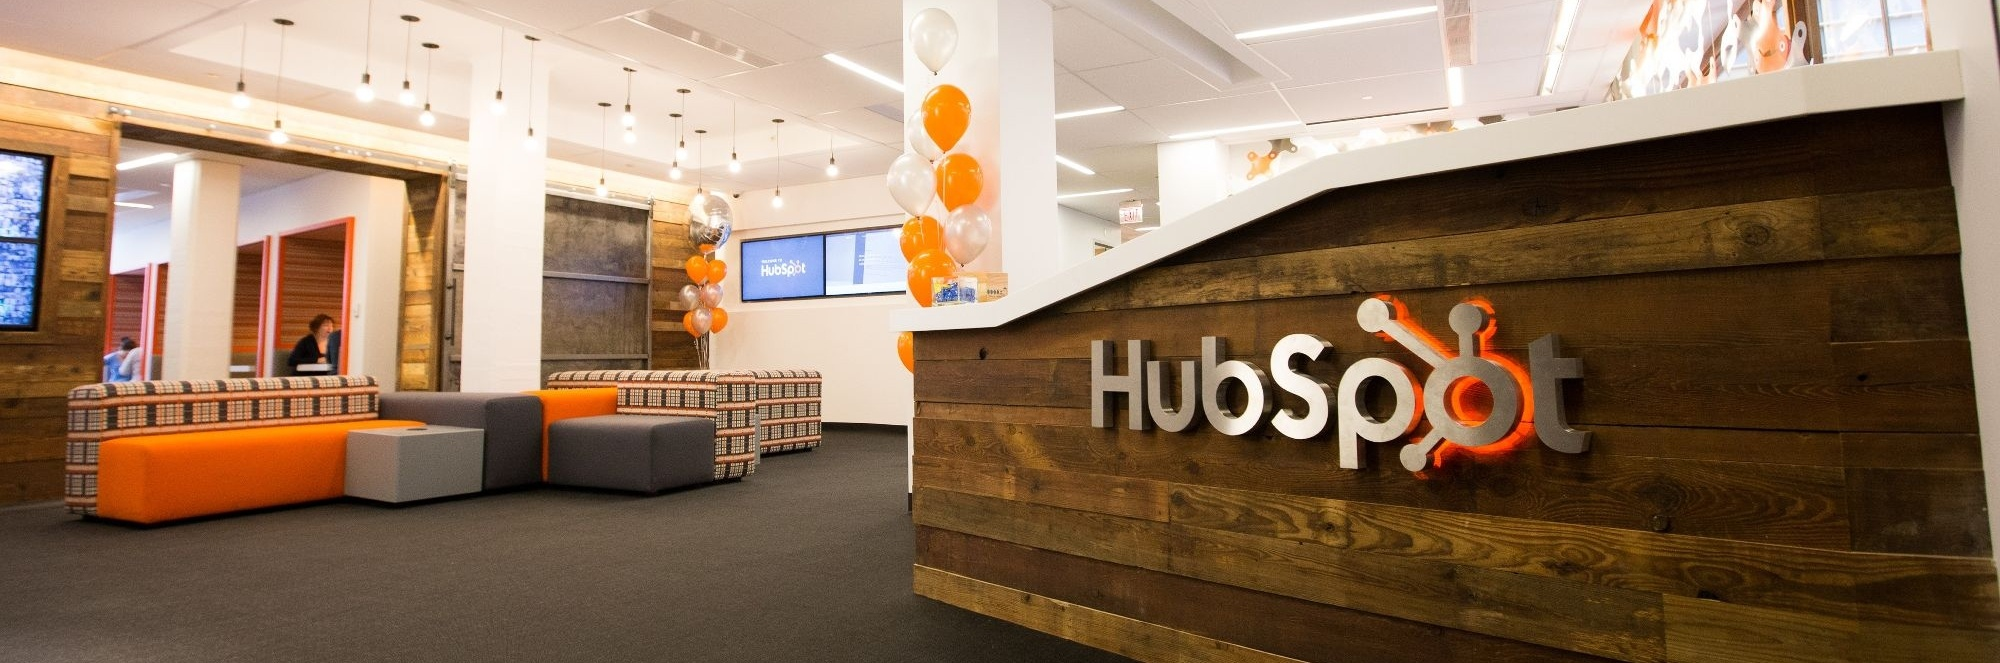 hubspot-office-685847-edited.jpg